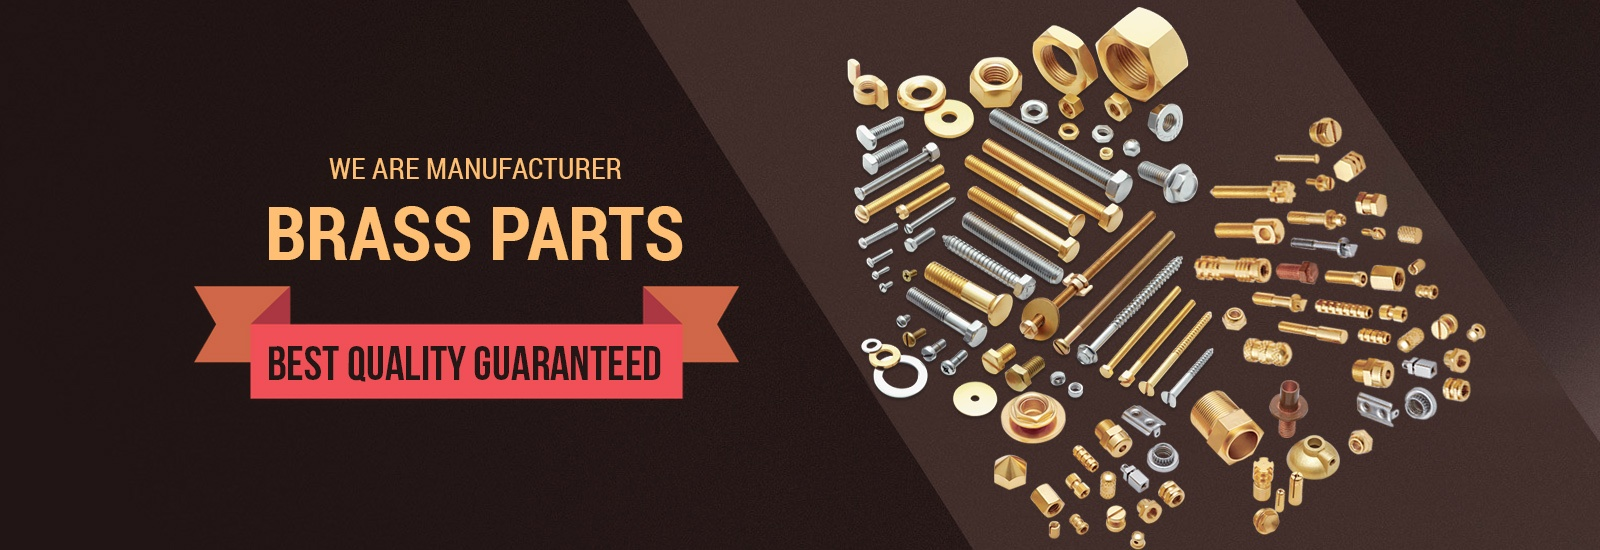 Brass Electrical Components Supplier